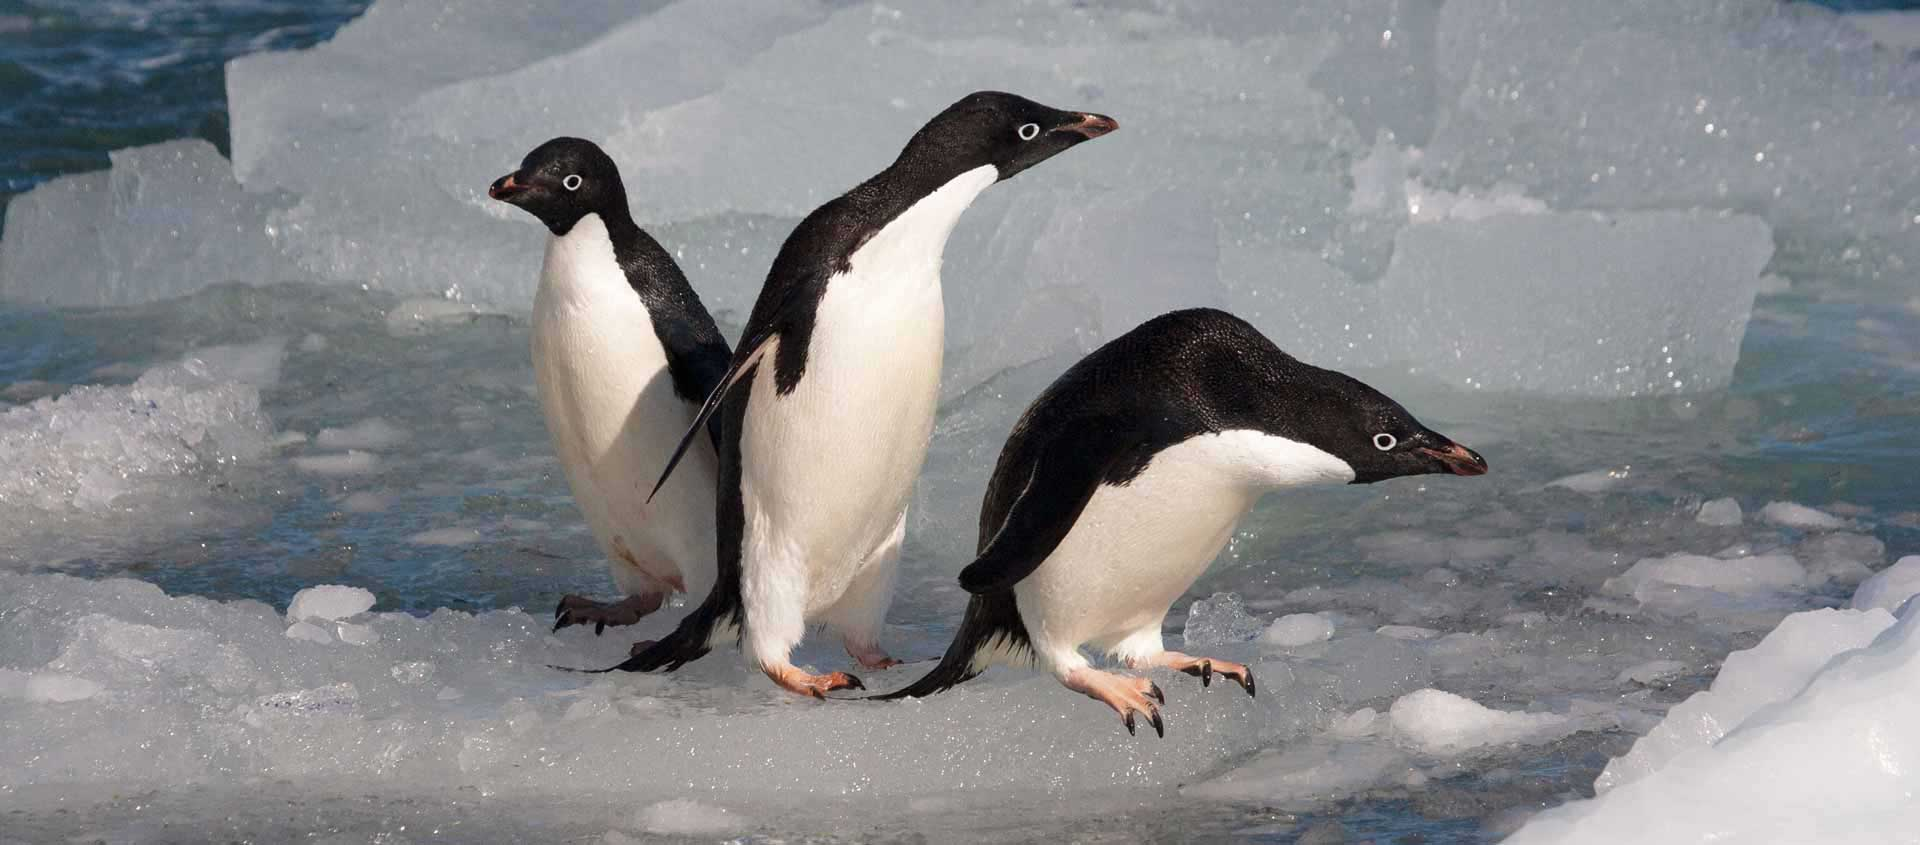 Emperor Penguin cruise with Antarctic Circle crossing picture of Adelie penguins